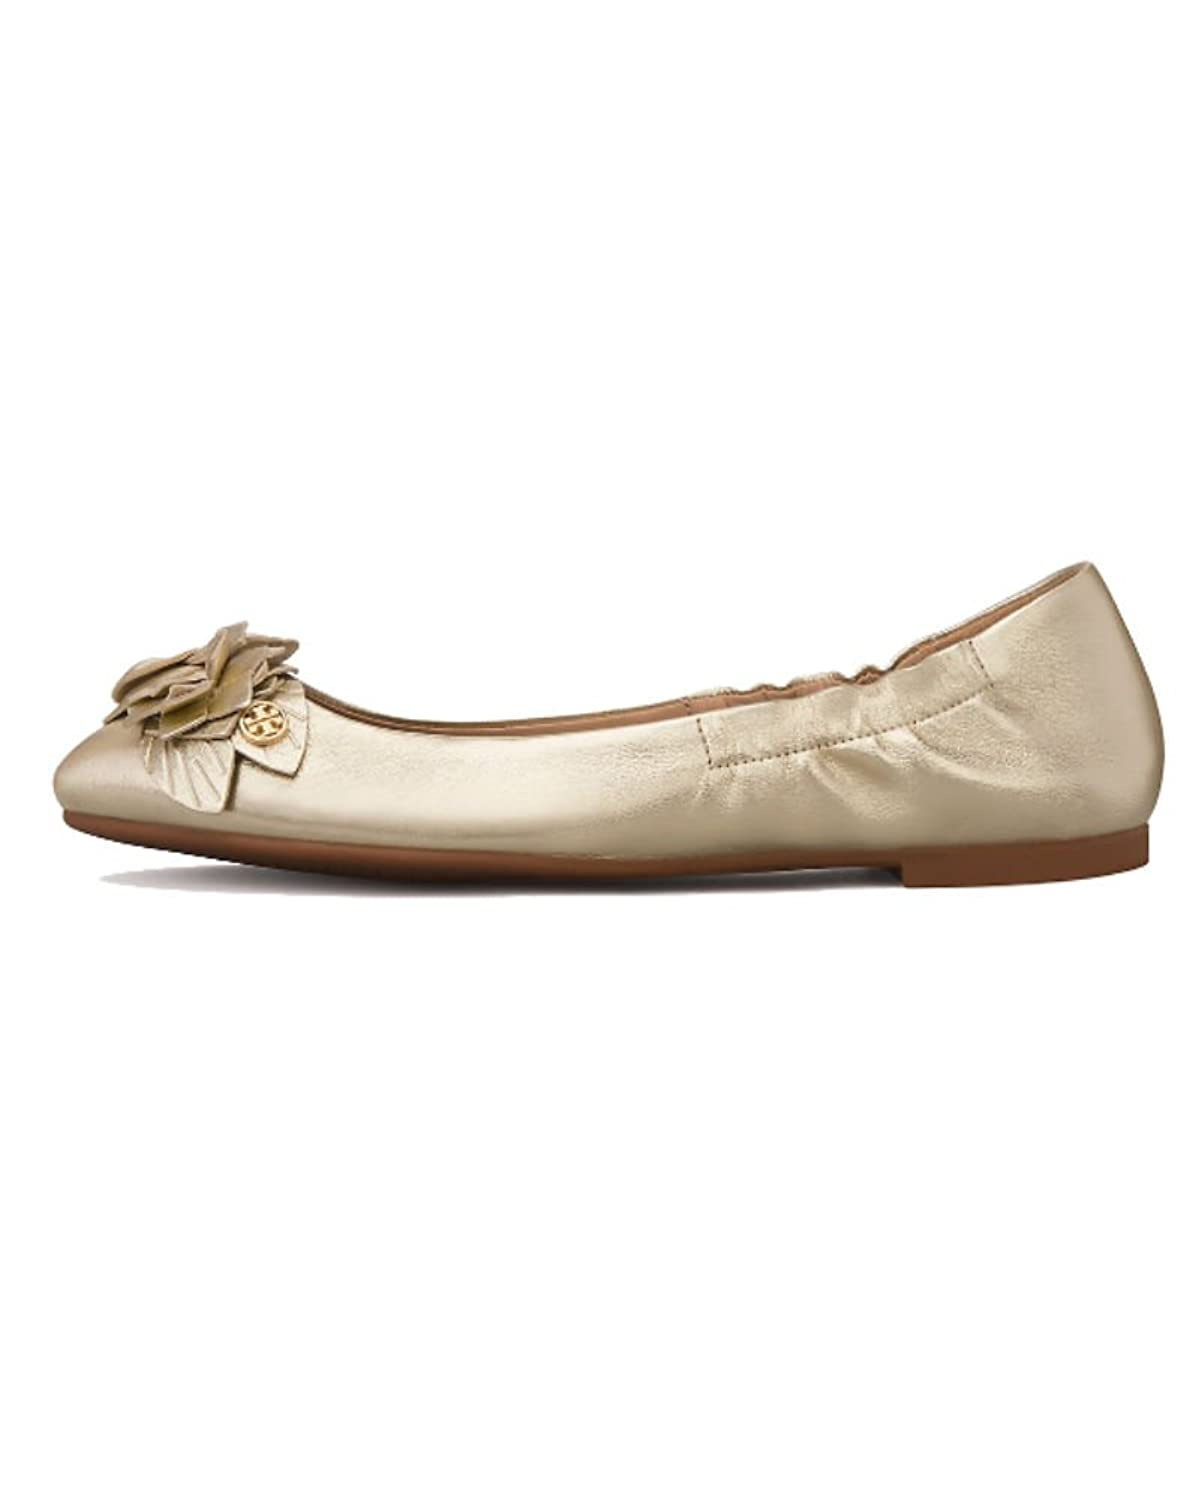 Tory Burch Blossom Metallic Leather Ballet Flats, Spark Gold